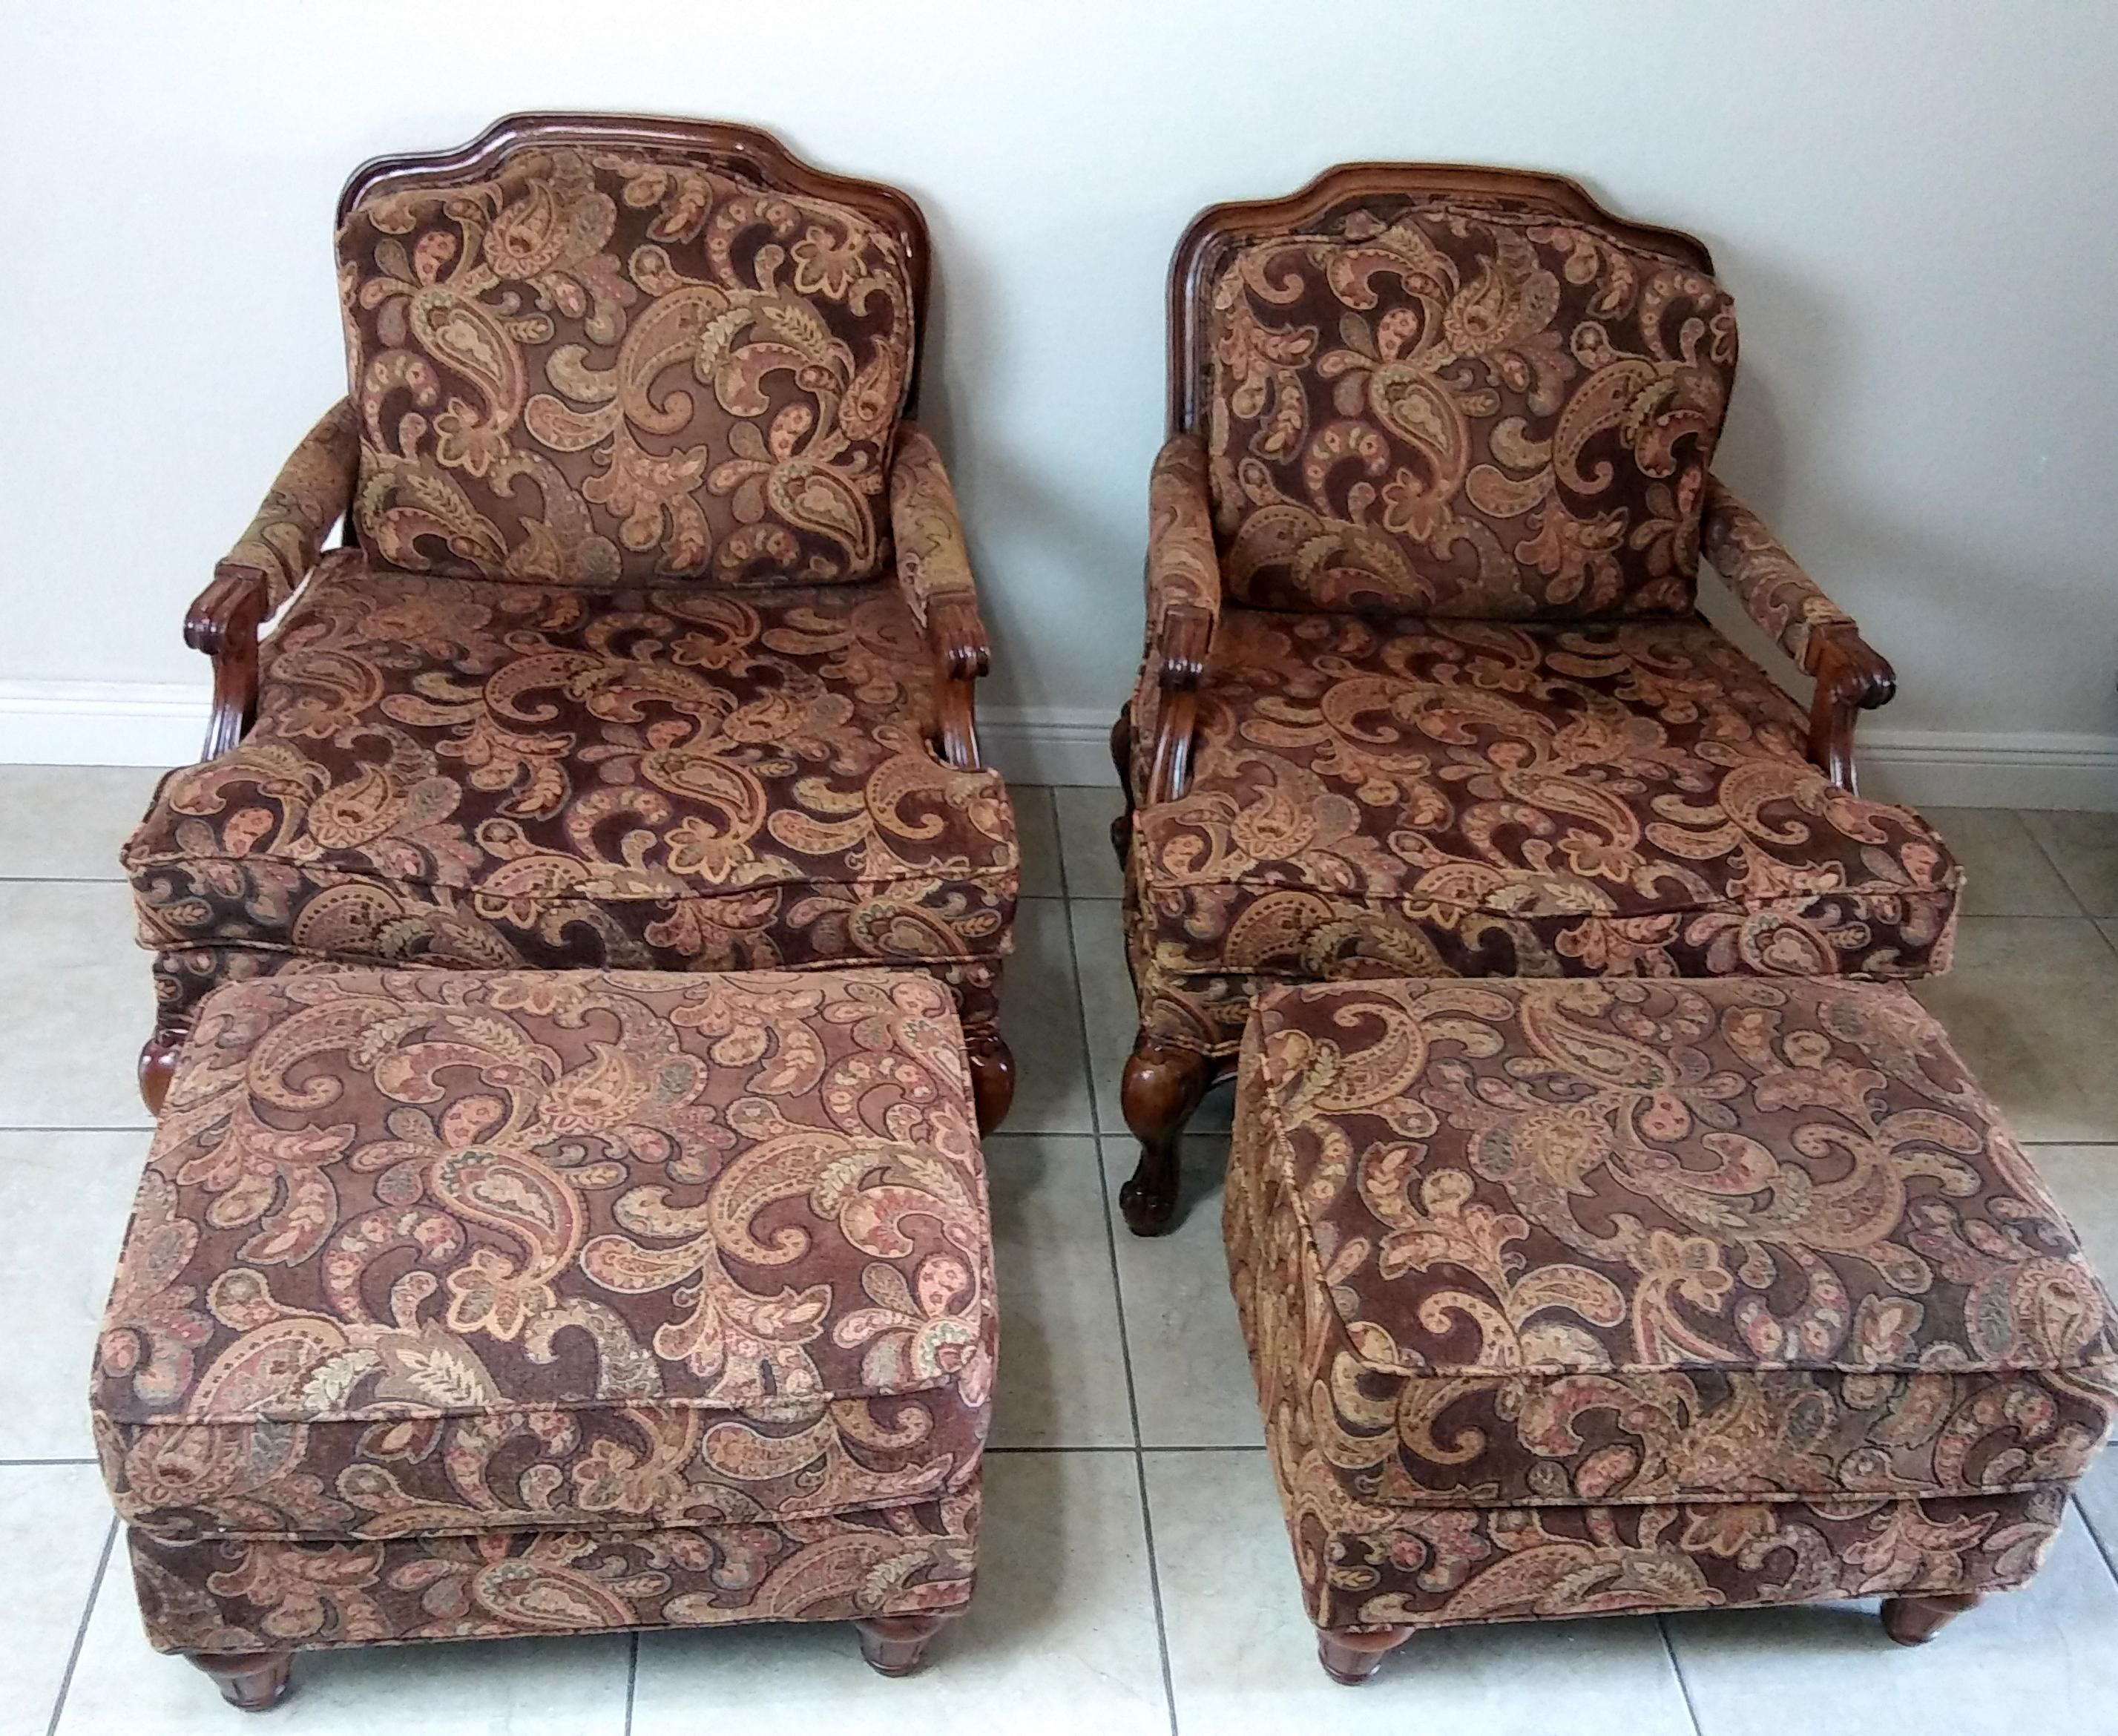 Charmant Flexsteel French Provincial Bergere Chairs U0026 Ottomans   A Pair   Image 2 Of  11